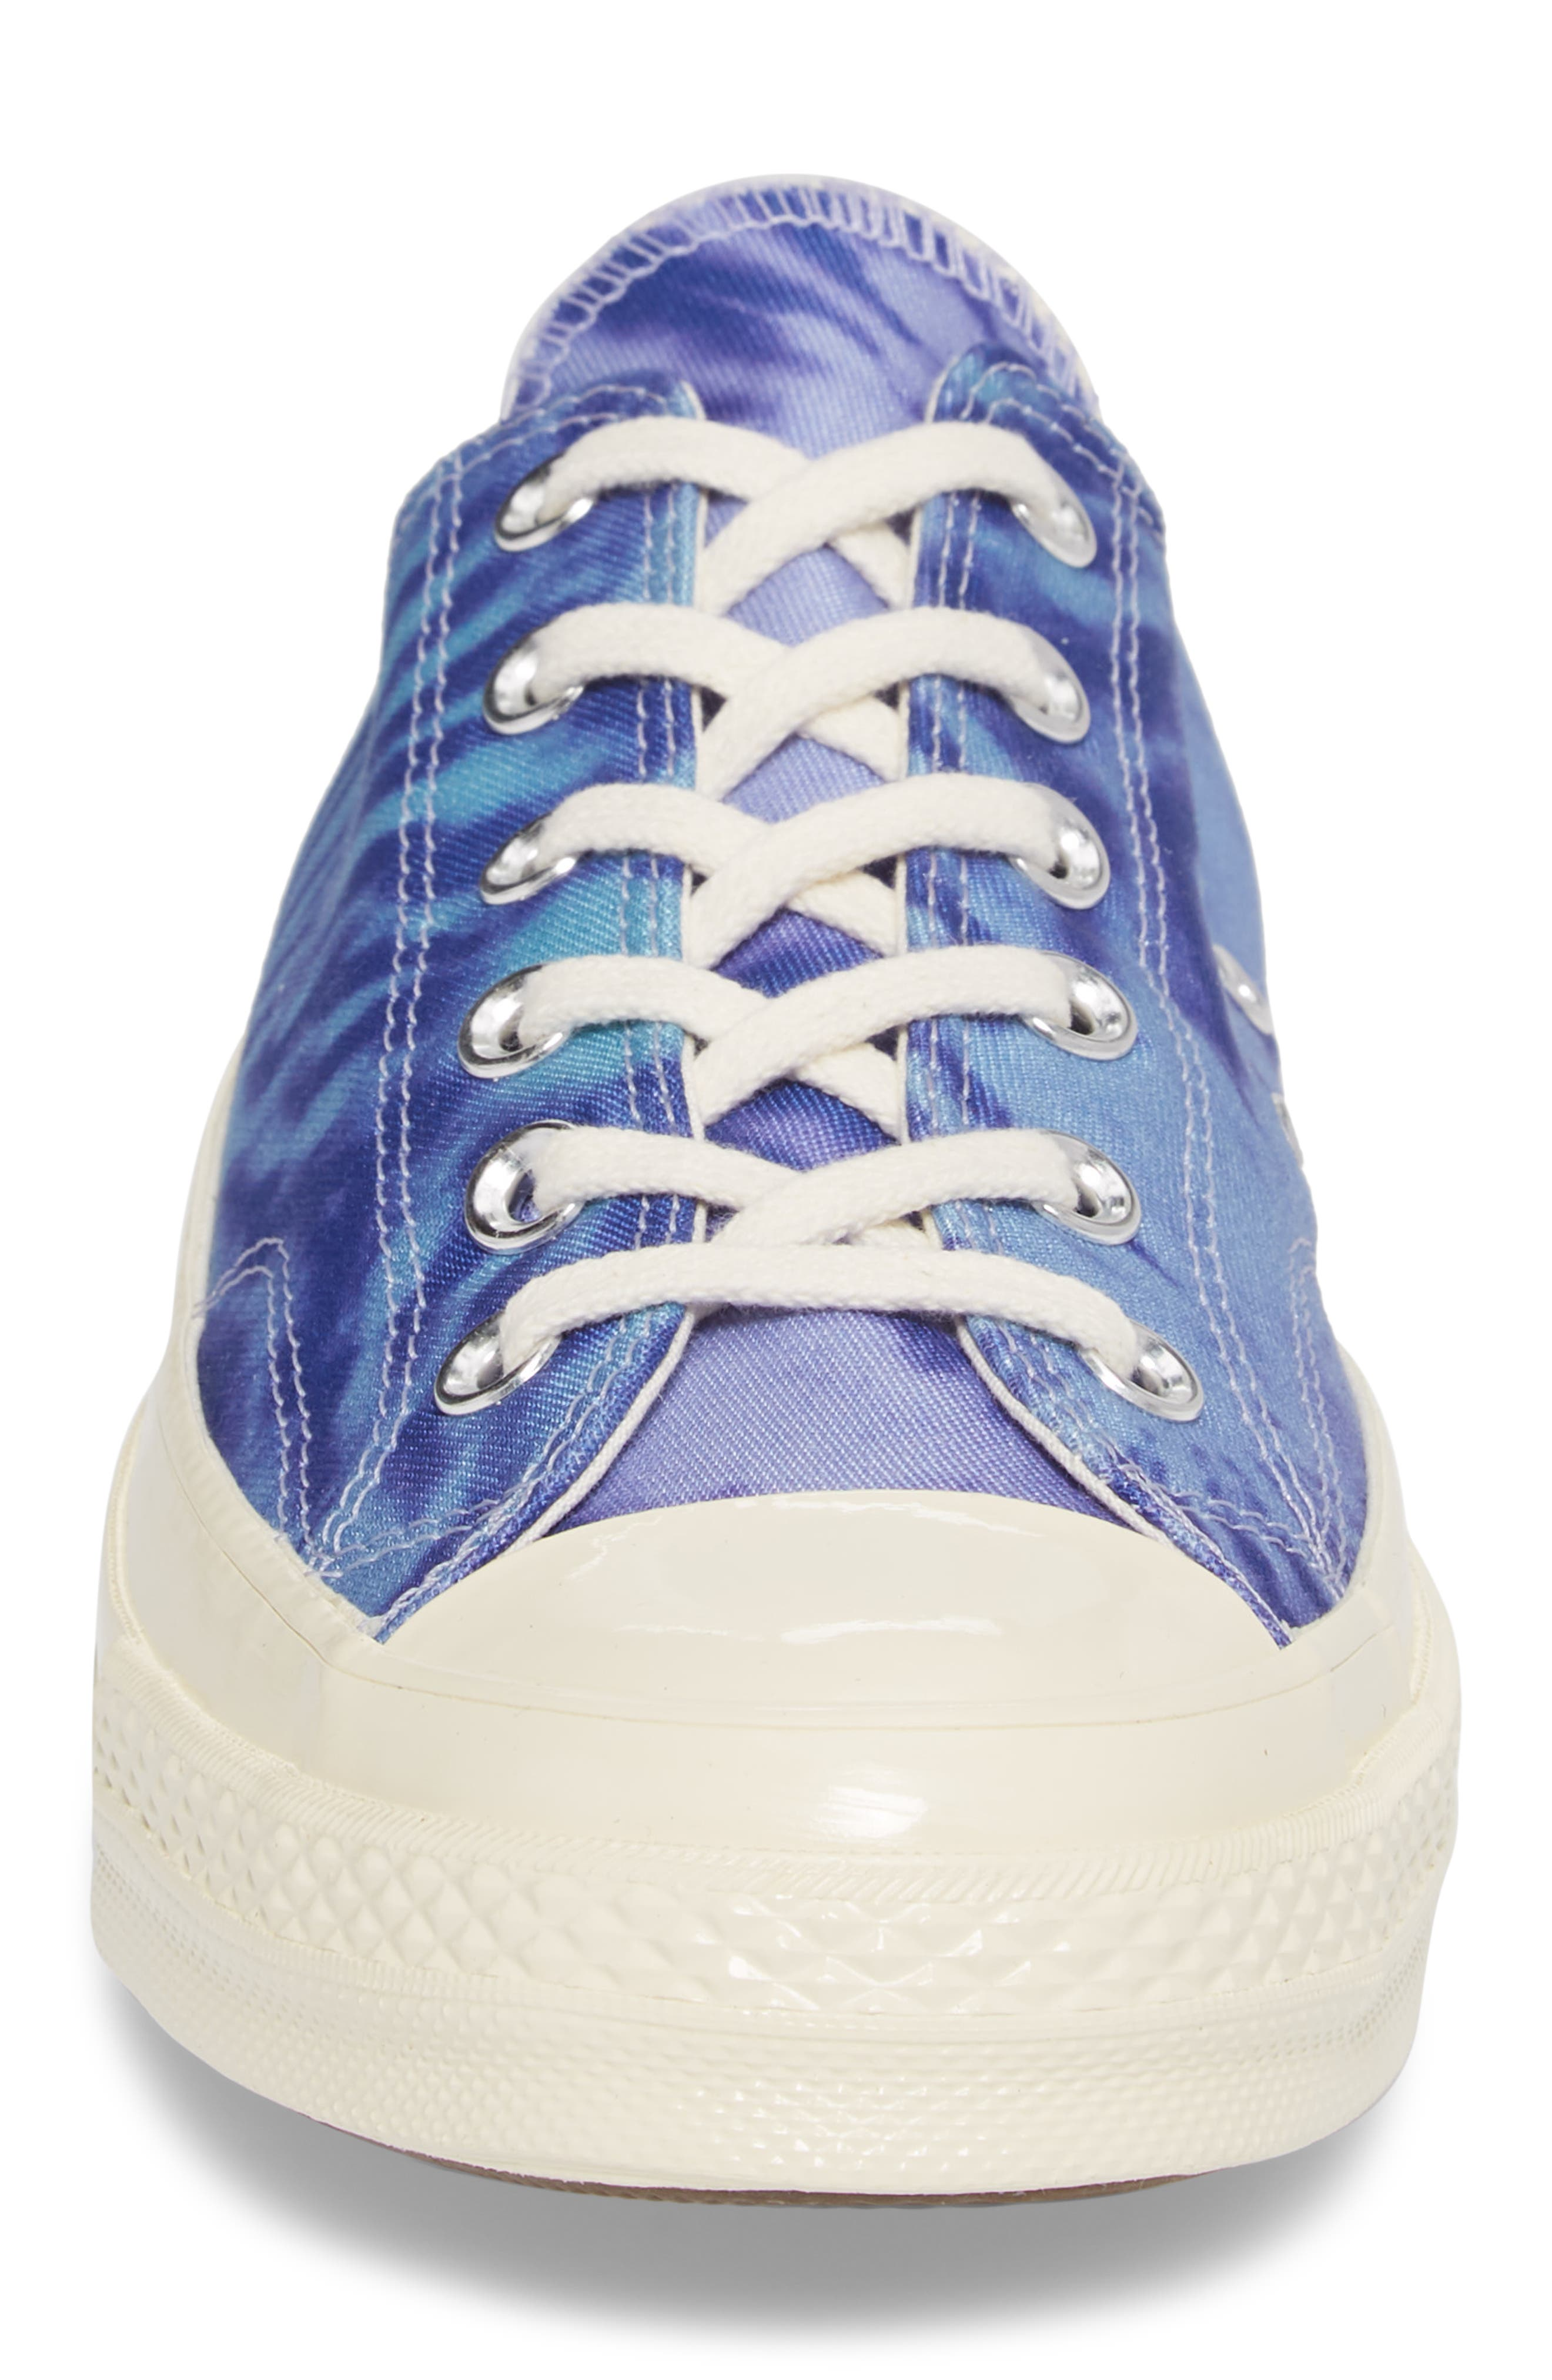 Chuck Taylor<sup>®</sup> All Star<sup>®</sup> 70 Tie Dye Low Top Sneaker,                             Alternate thumbnail 4, color,                             400